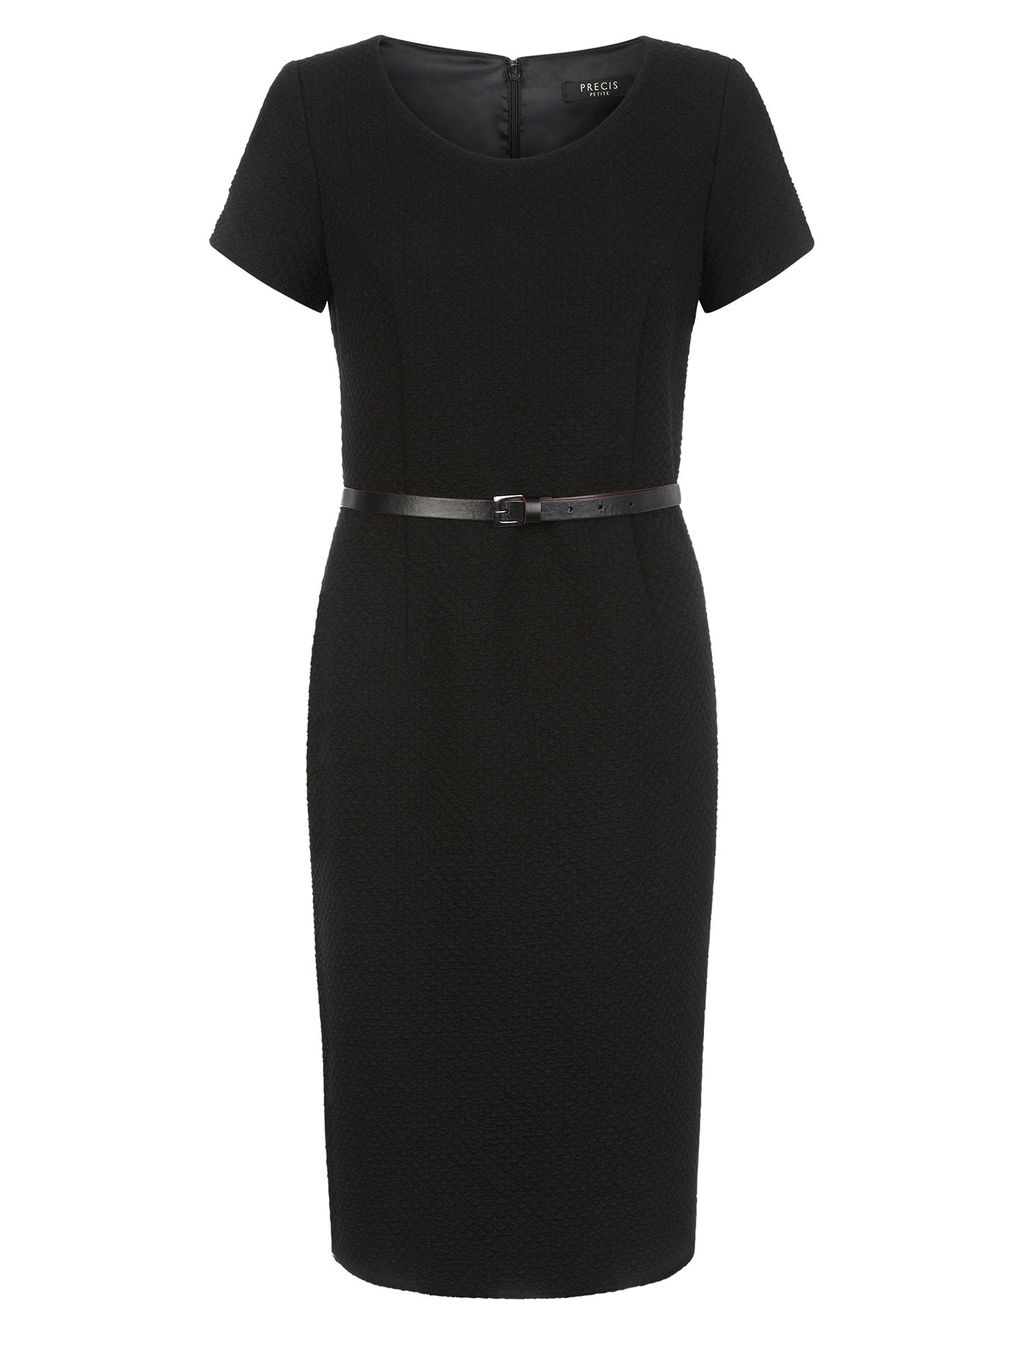 Textured Ponte Black Dress - style: shift; length: below the knee; neckline: round neck; fit: tailored/fitted; pattern: plain; waist detail: twist front waist detail/nipped in at waist on one side/soft pleats/draping/ruching/gathering waist detail; predominant colour: black; occasions: evening, work; fibres: linen - 100%; sleeve length: short sleeve; sleeve style: standard; texture group: linen; pattern type: fabric; season: a/w 2015; wardrobe: investment